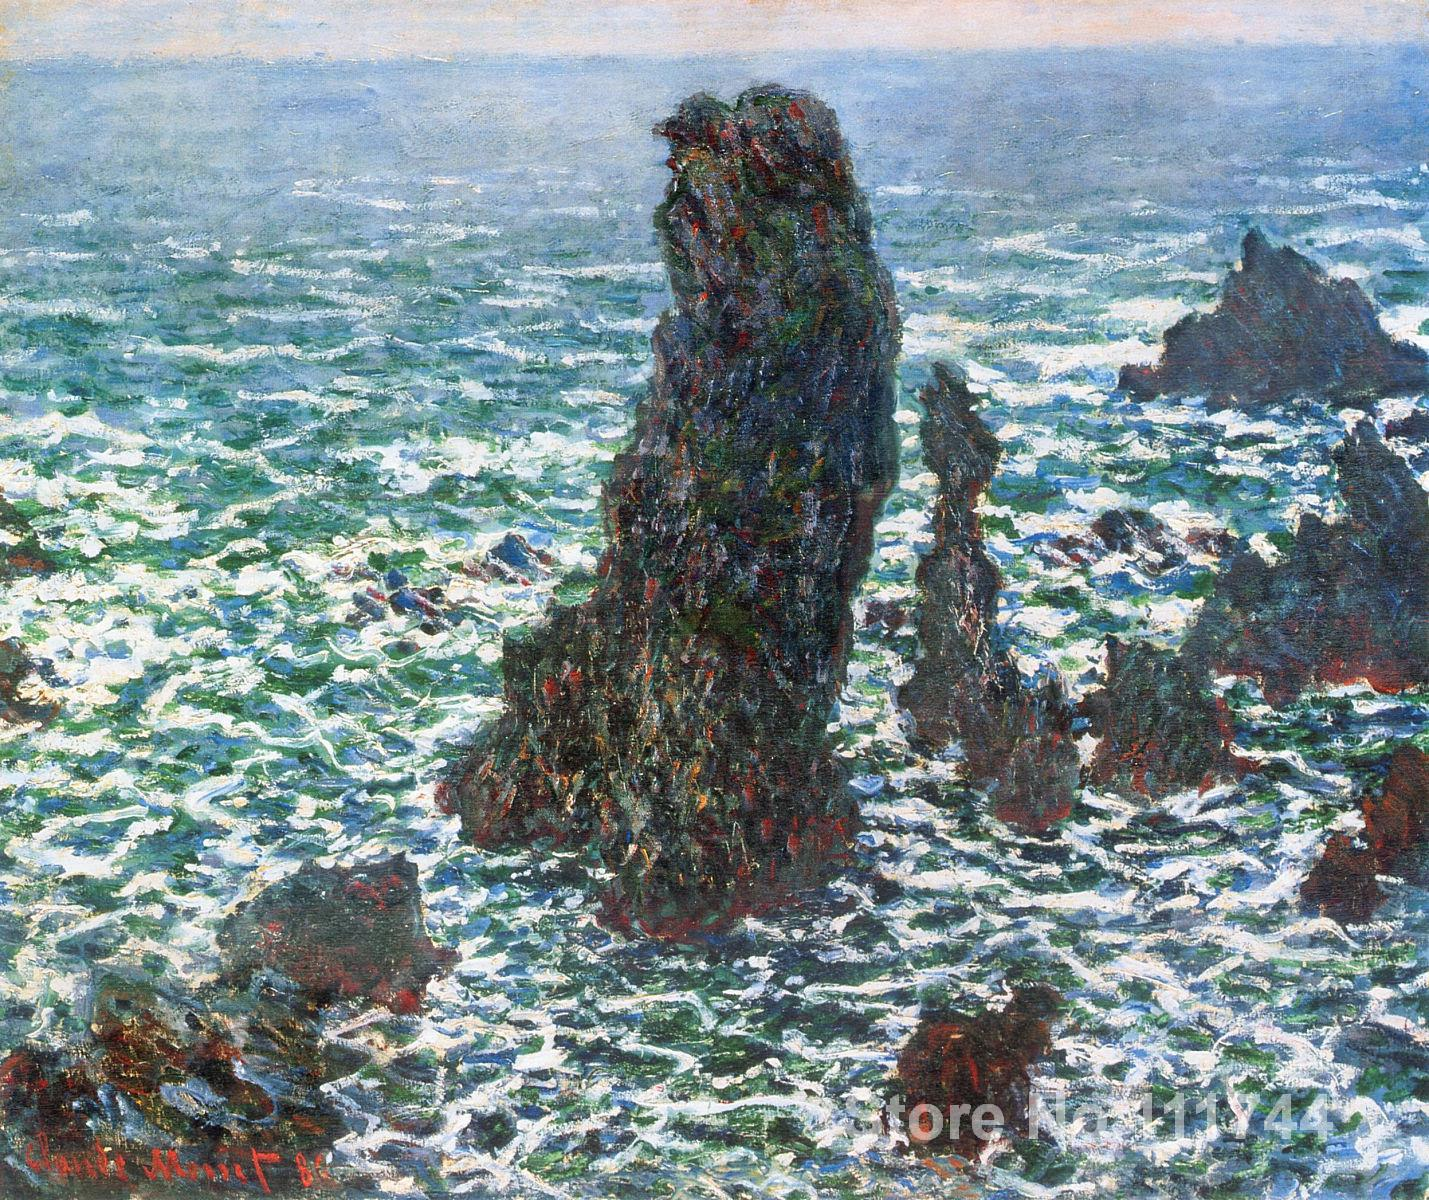 bathroom art The Pyramids of Port Coton Belle Ile en Mer by Claude Monet paintings Home Decor Hand painted High quality